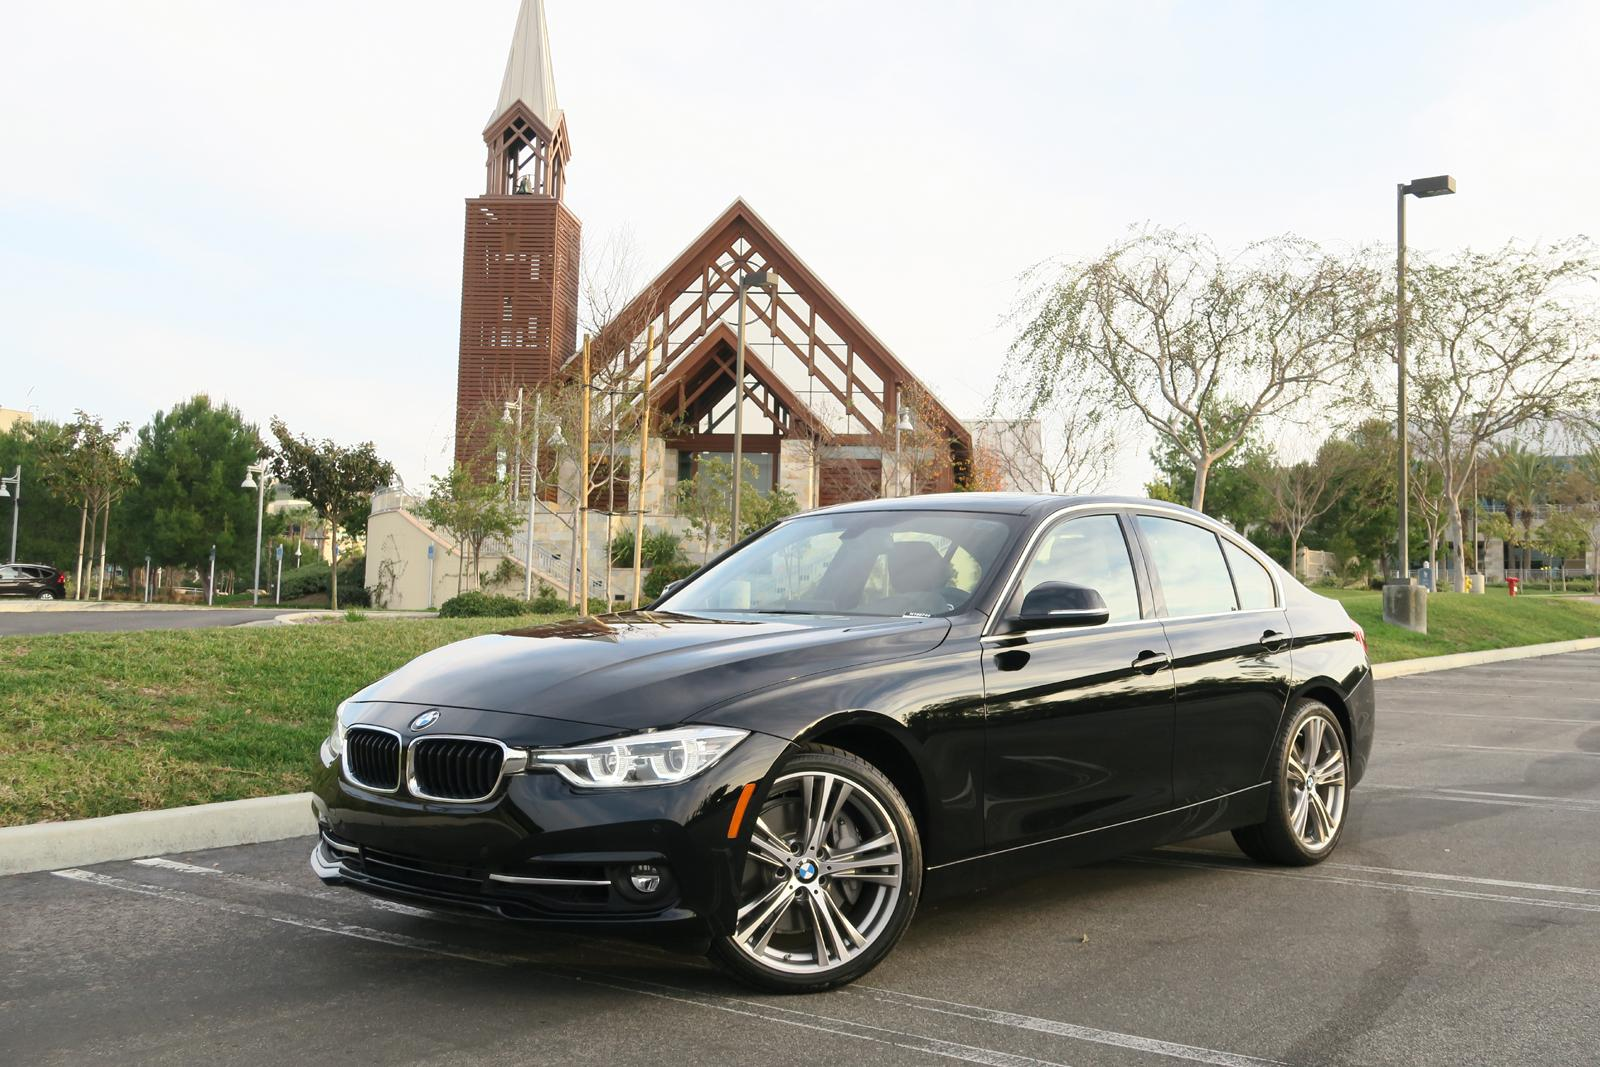 BMW Of Newport >> Tested: 2016 BMW 340i | YouWheel - Your Car Expert